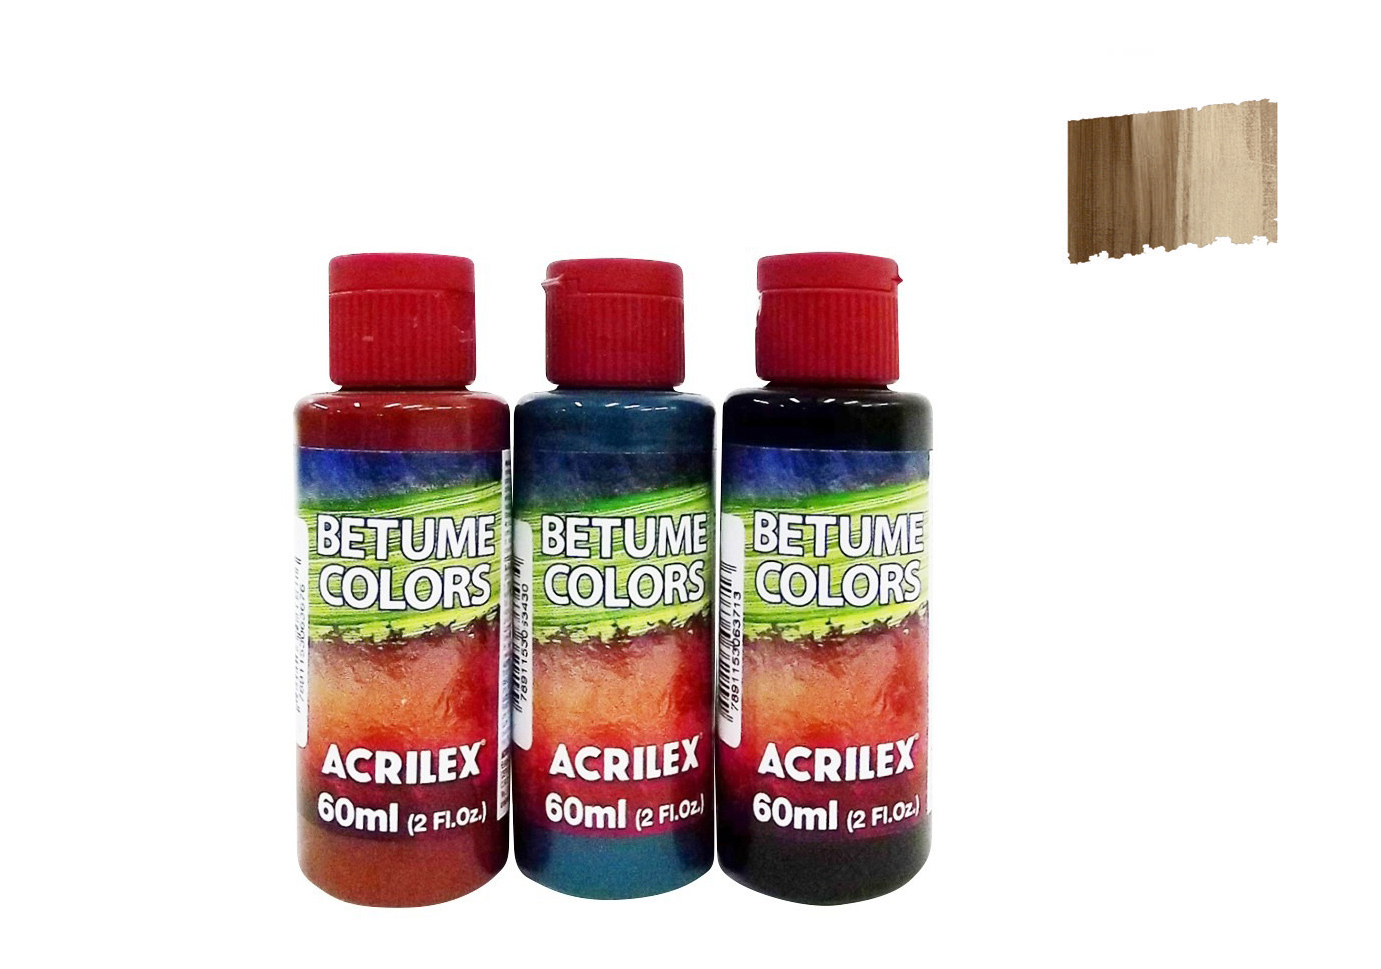 BETUME COLORS 60ML MARRON CAFE 21660953 ACRILEX